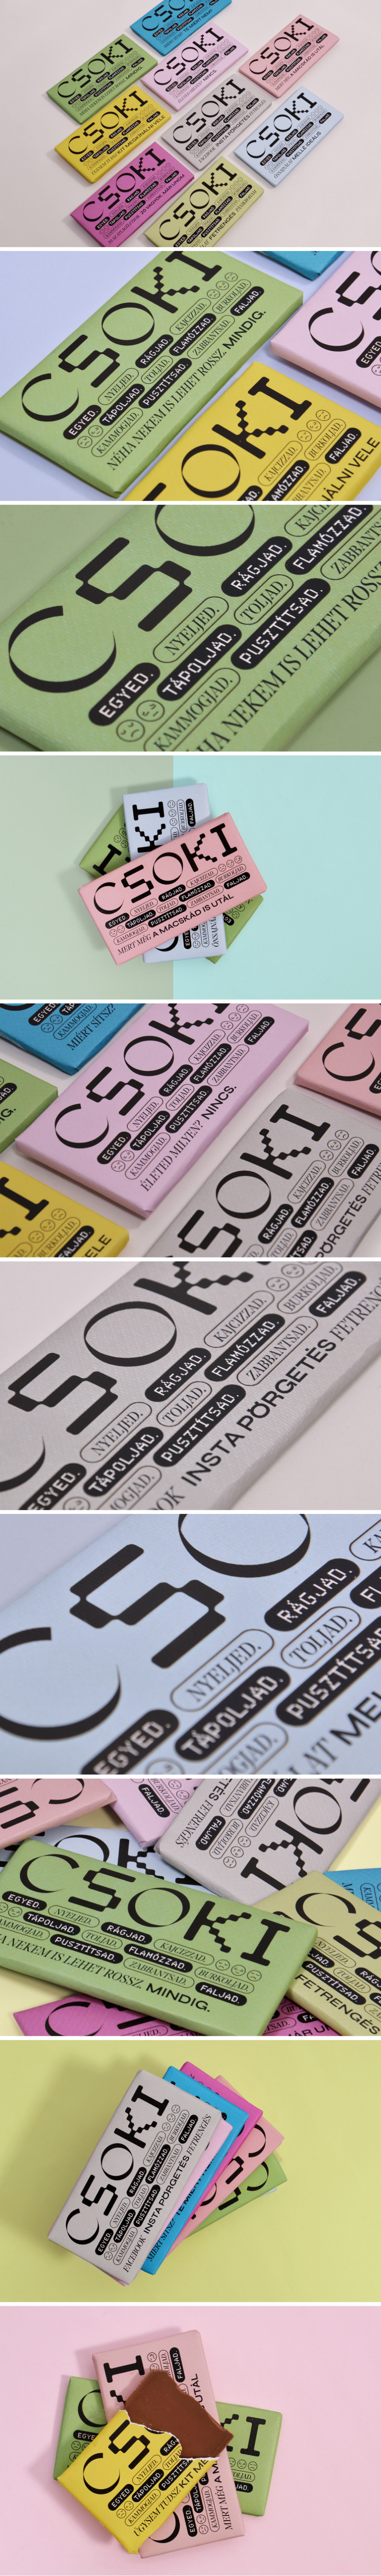 Branding,Packaging,Typography